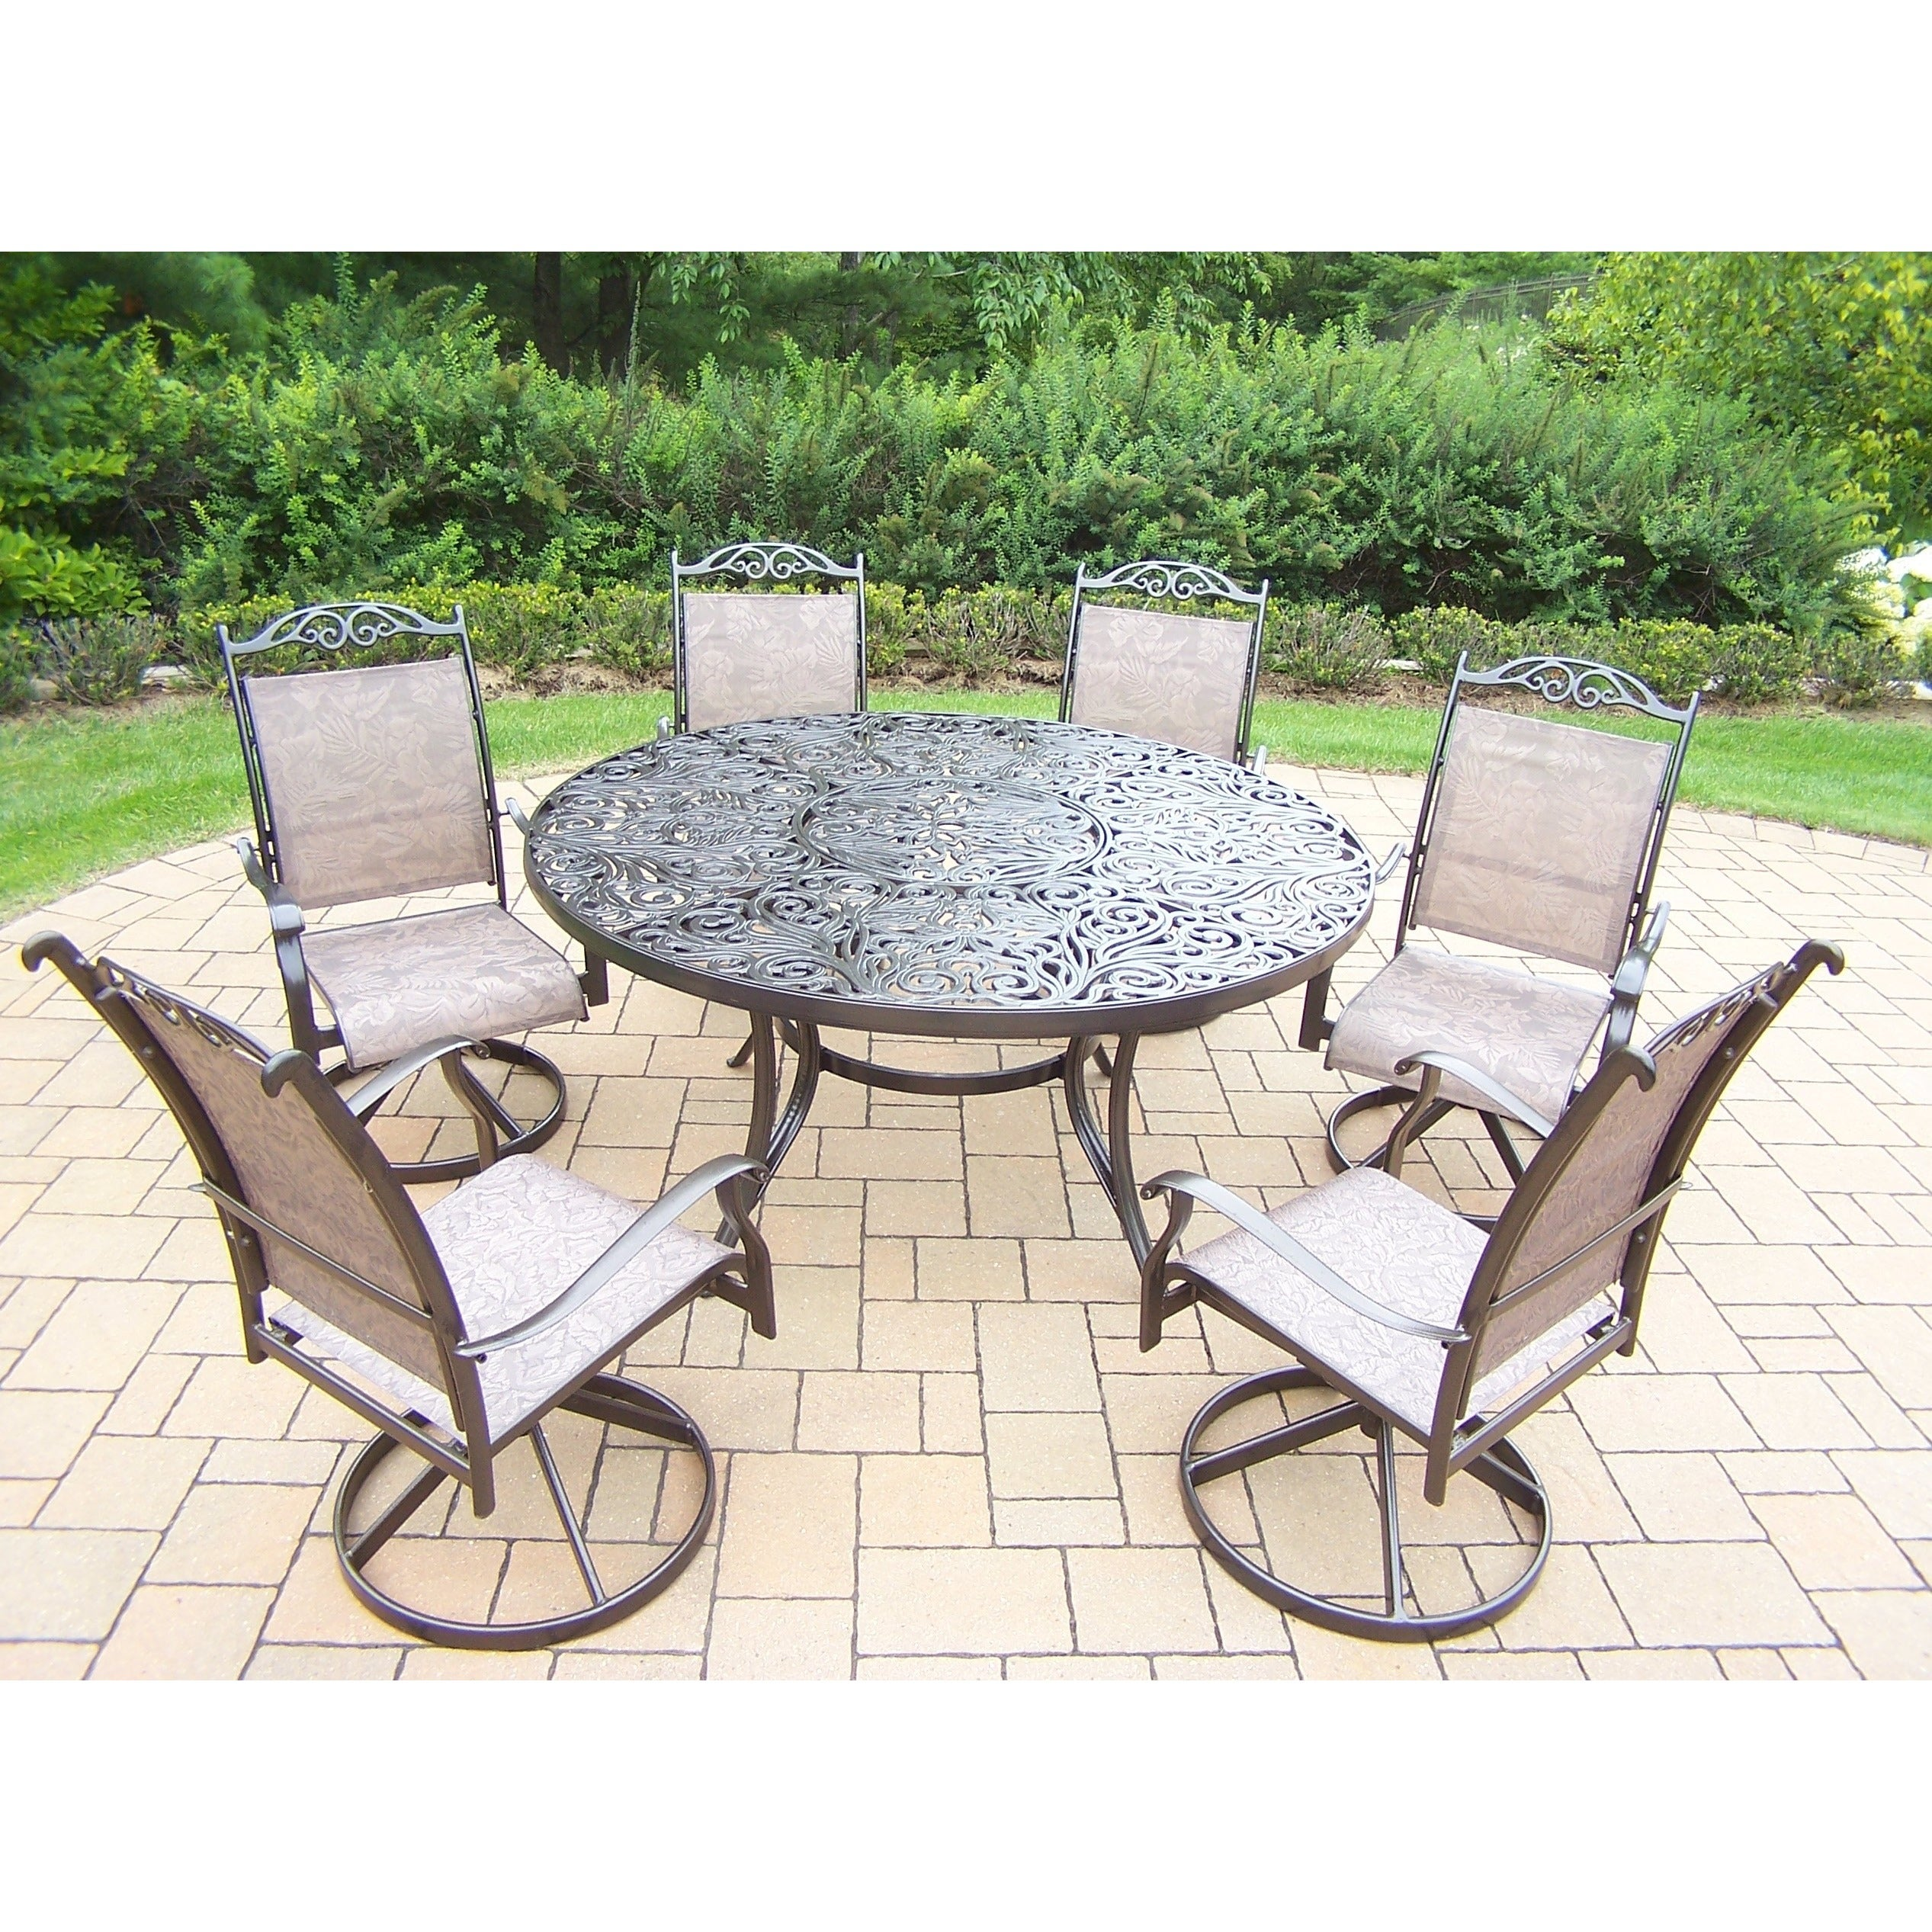 Shop aluminum 7 piece outdoor patio dining set with 6 swivel rockers free shipping today overstock 12775834